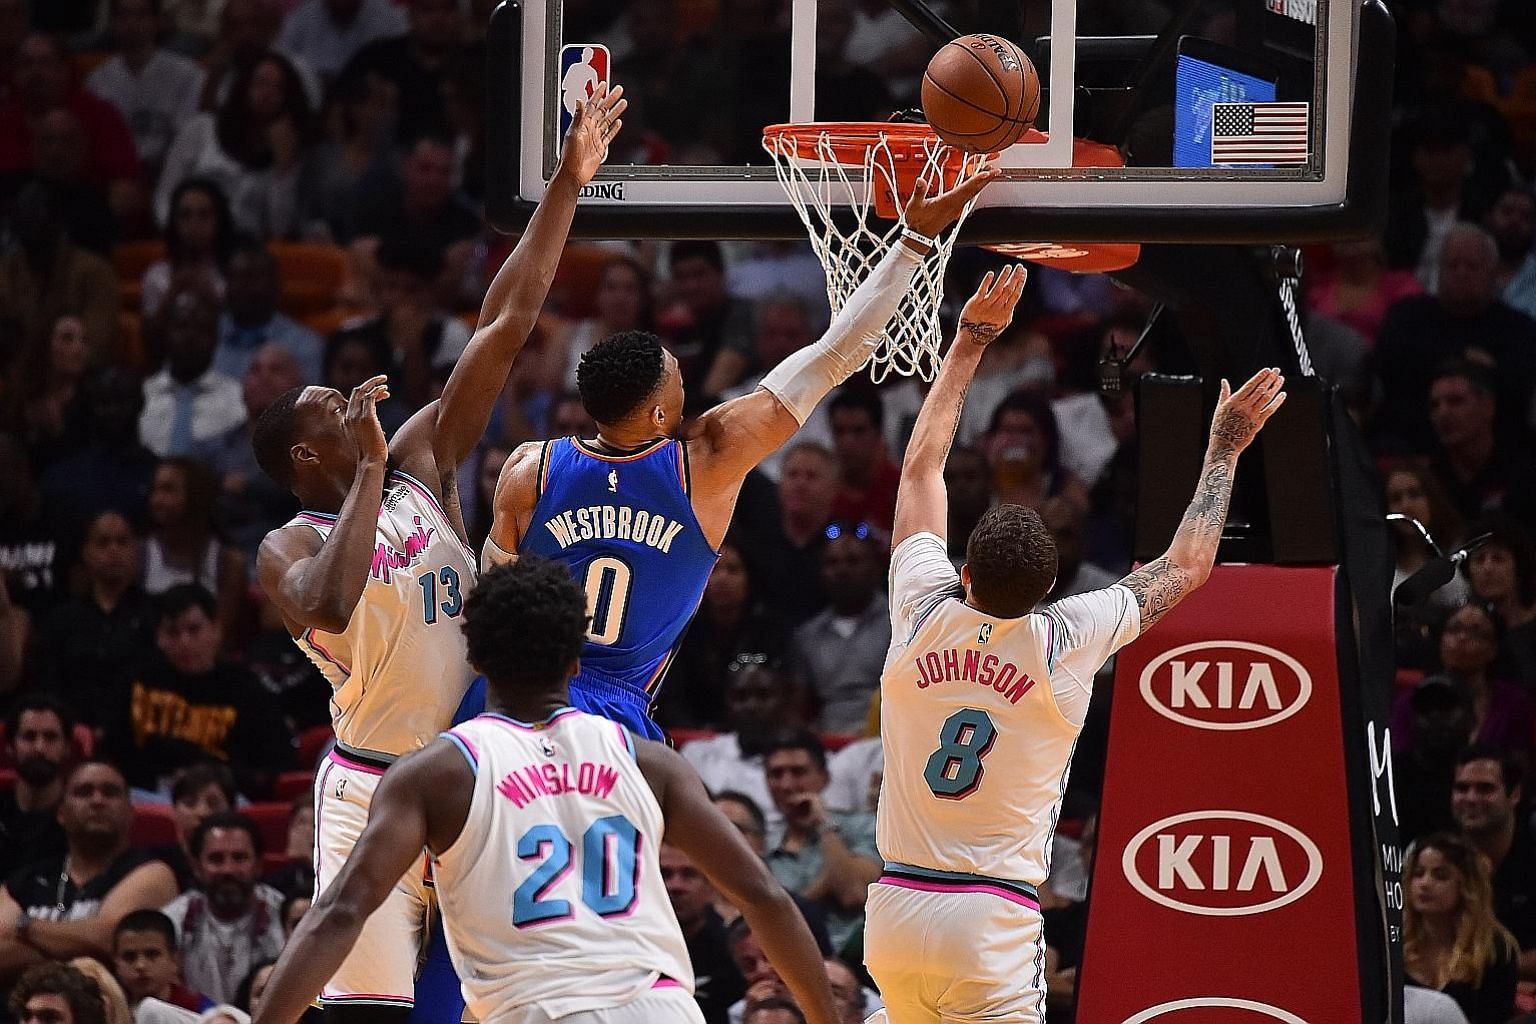 Oklahoma City point guard Russell Westbrook evading the challenges of Miami's Edrice Adebayo and Tyler Johnson for a finger roll. The Thunder sealed their post-season spot with a 115-93 win at the American Airlines Arena.